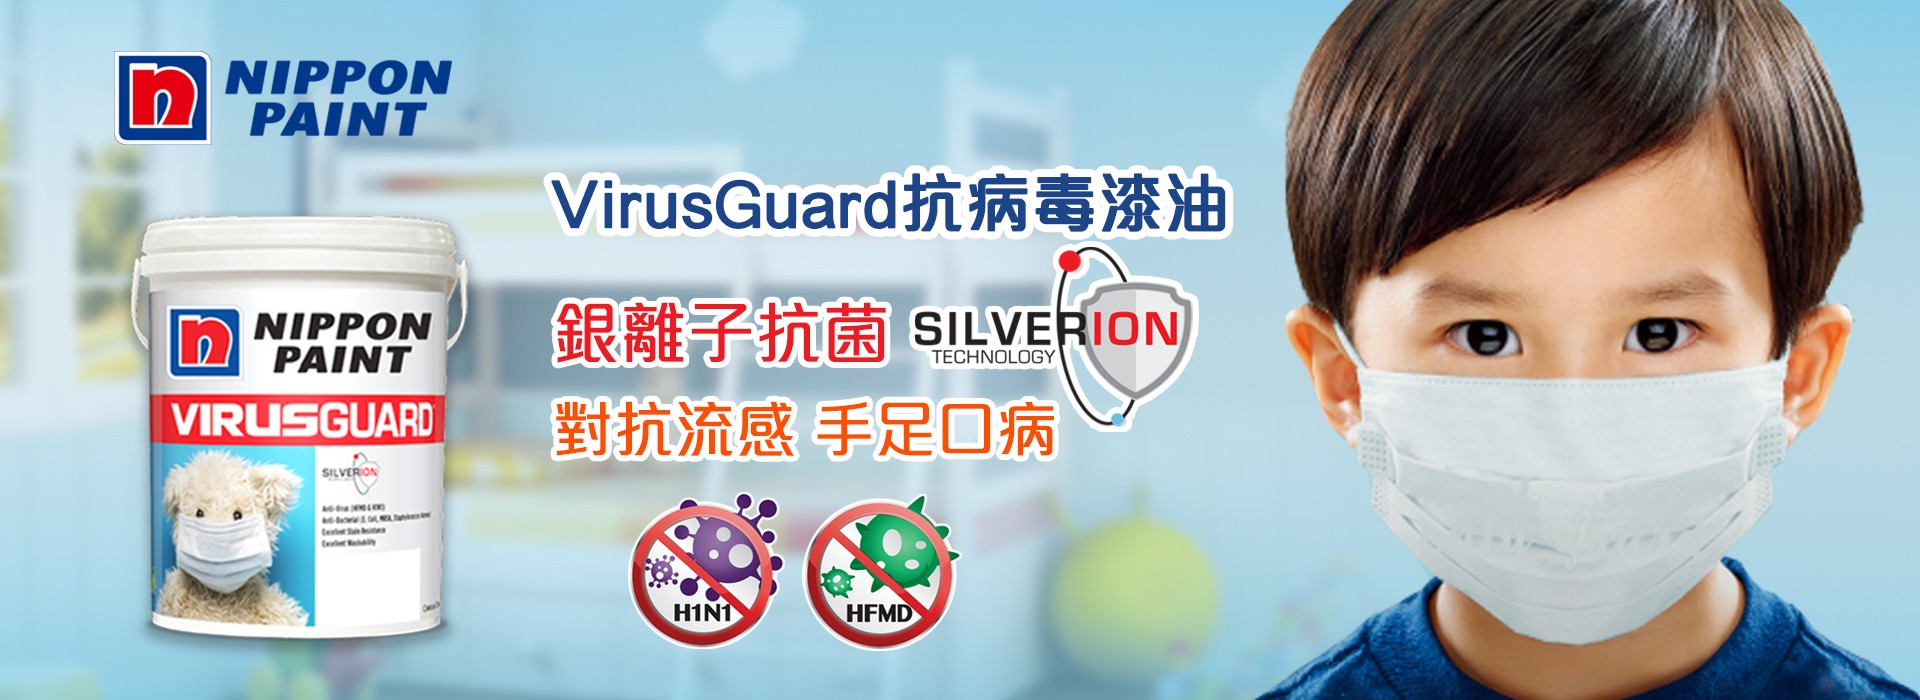 兆記行website banner (virusguard)